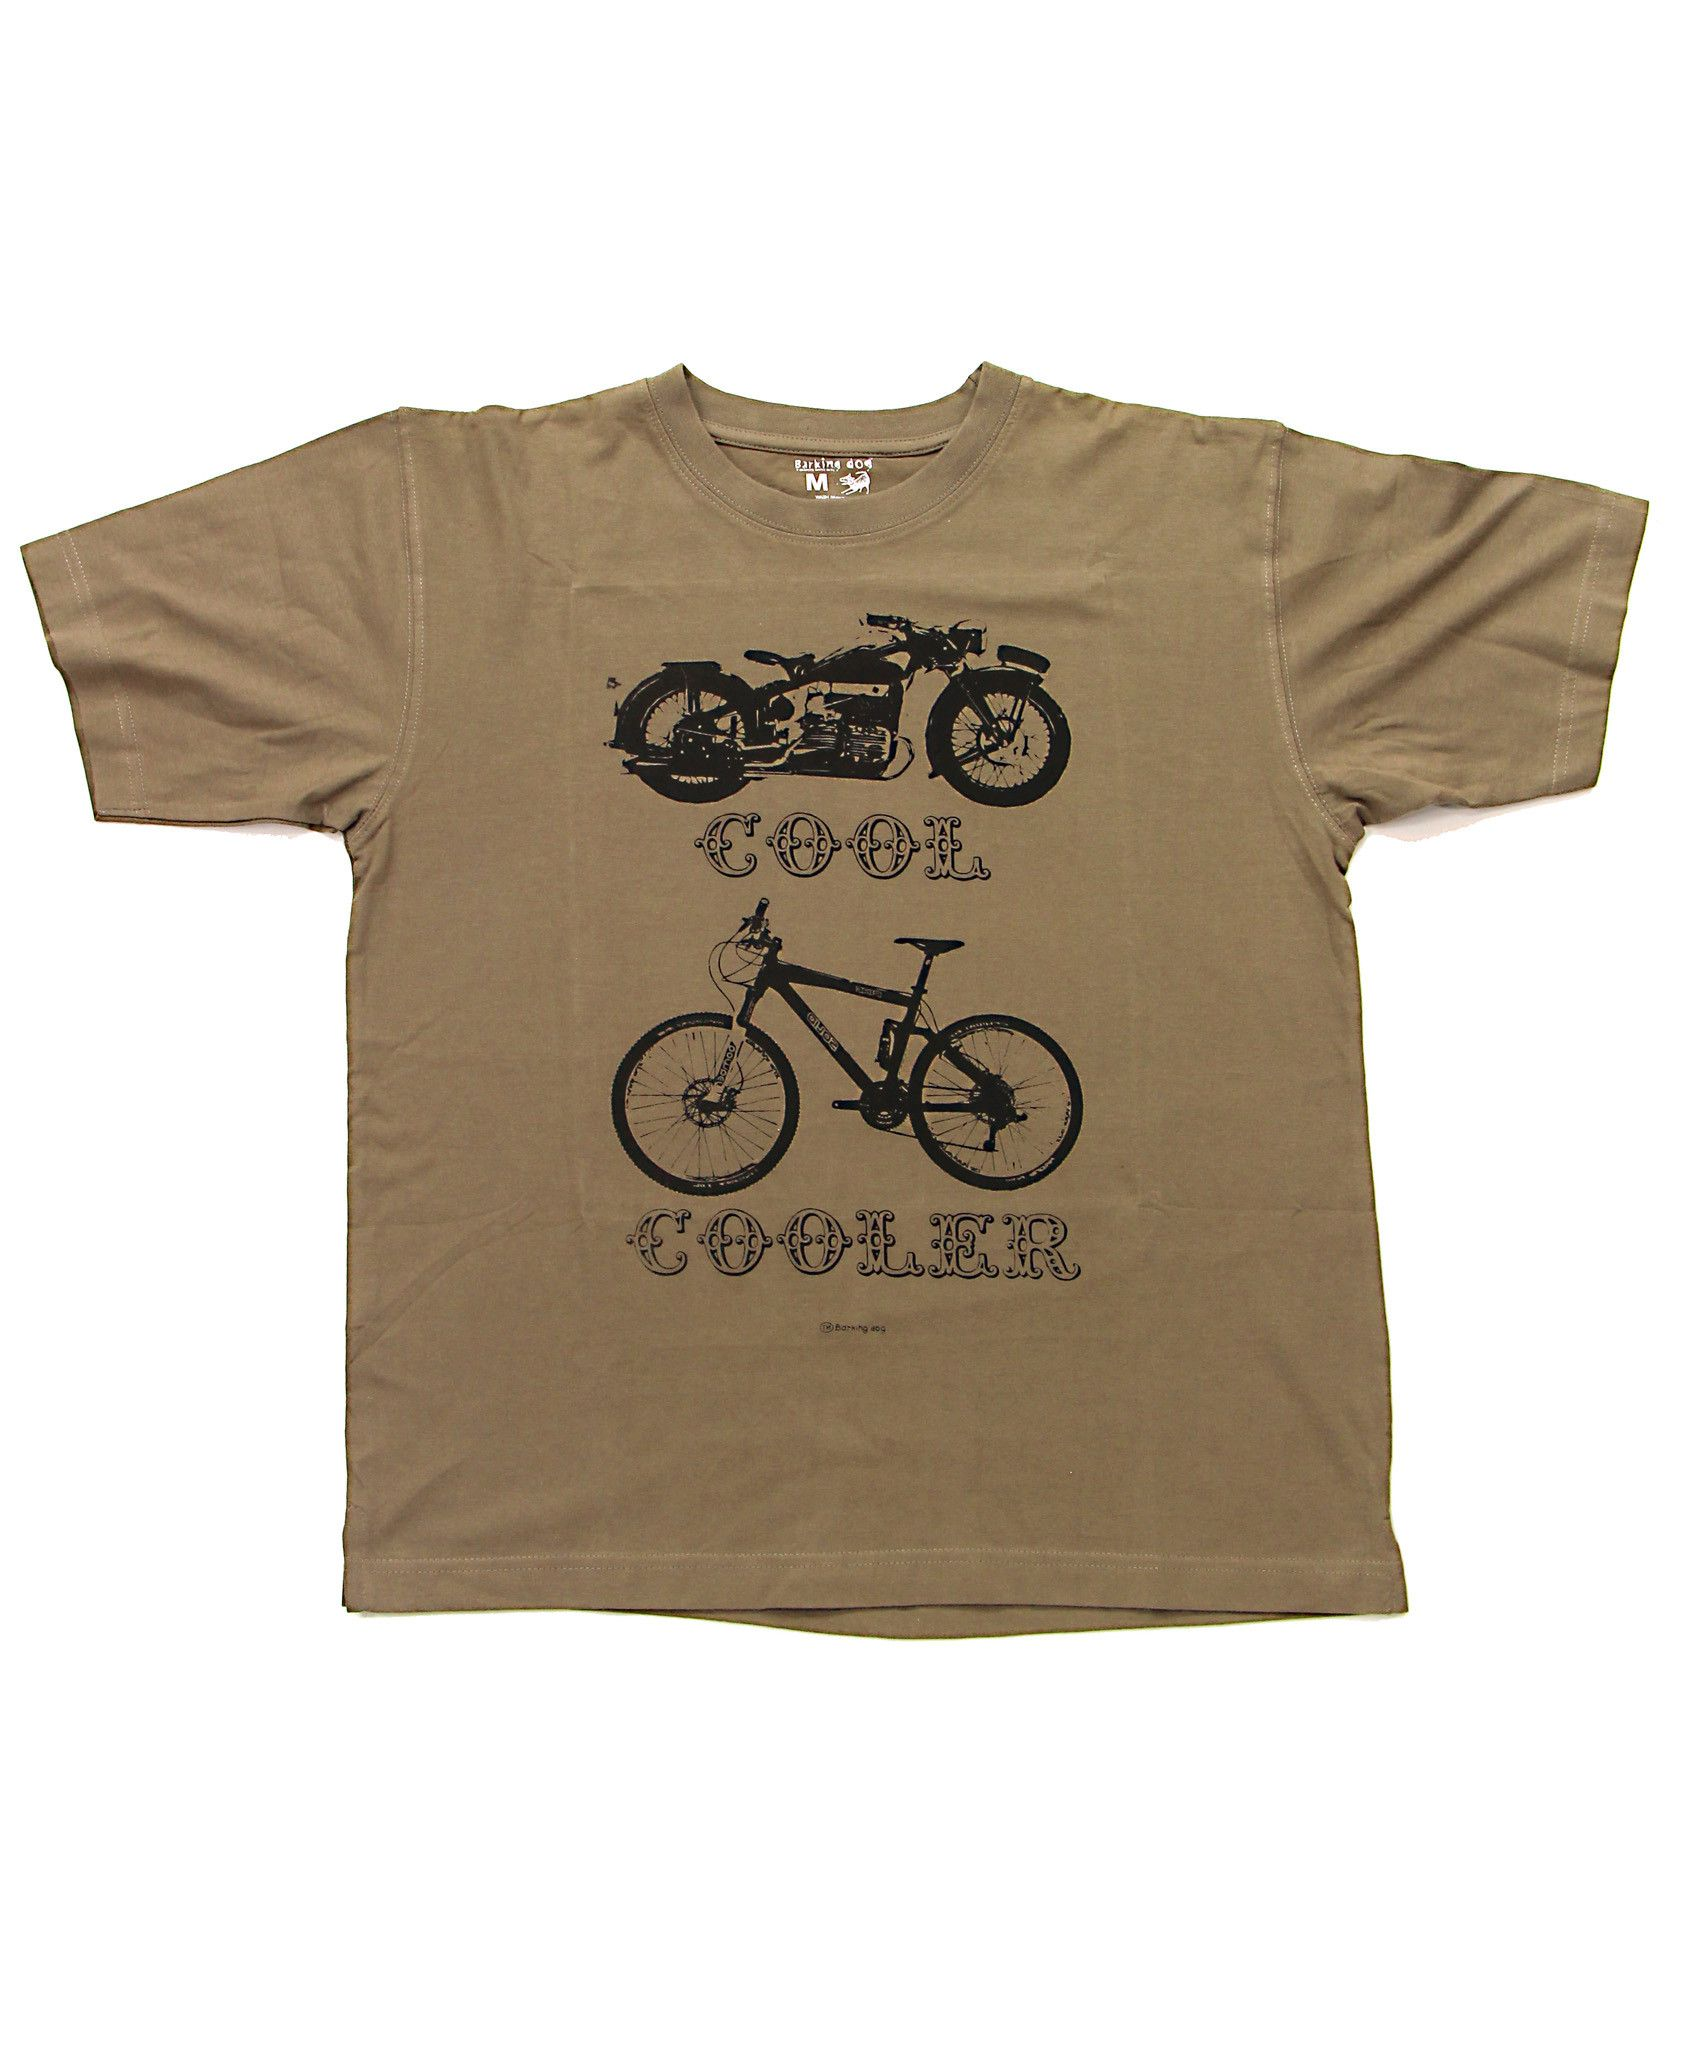 Cooler, Men | Tantra Tshirts USA - India on a Tshirt And while ...